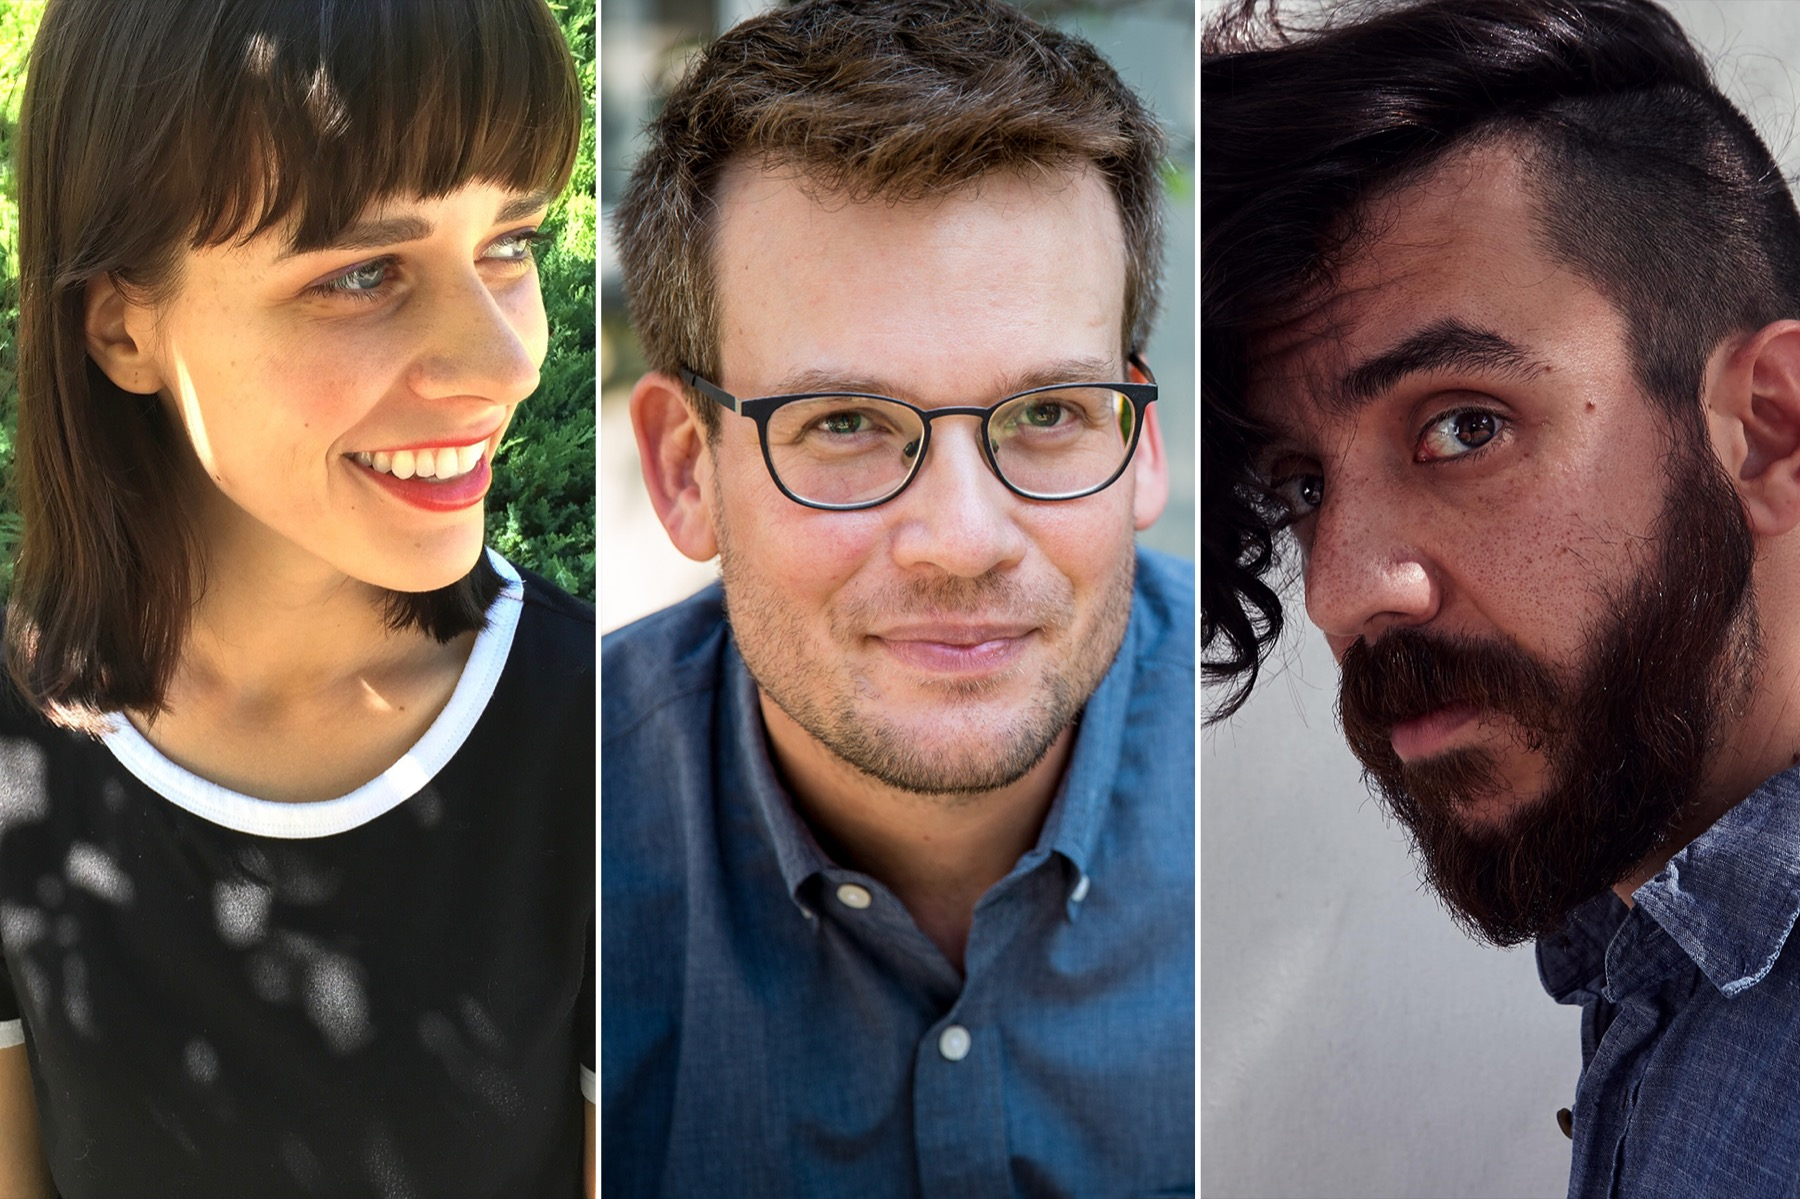 Chicago promo for Ours Poetica Launch Featuring Paige Lewis, John Green & Kaveh Akbar